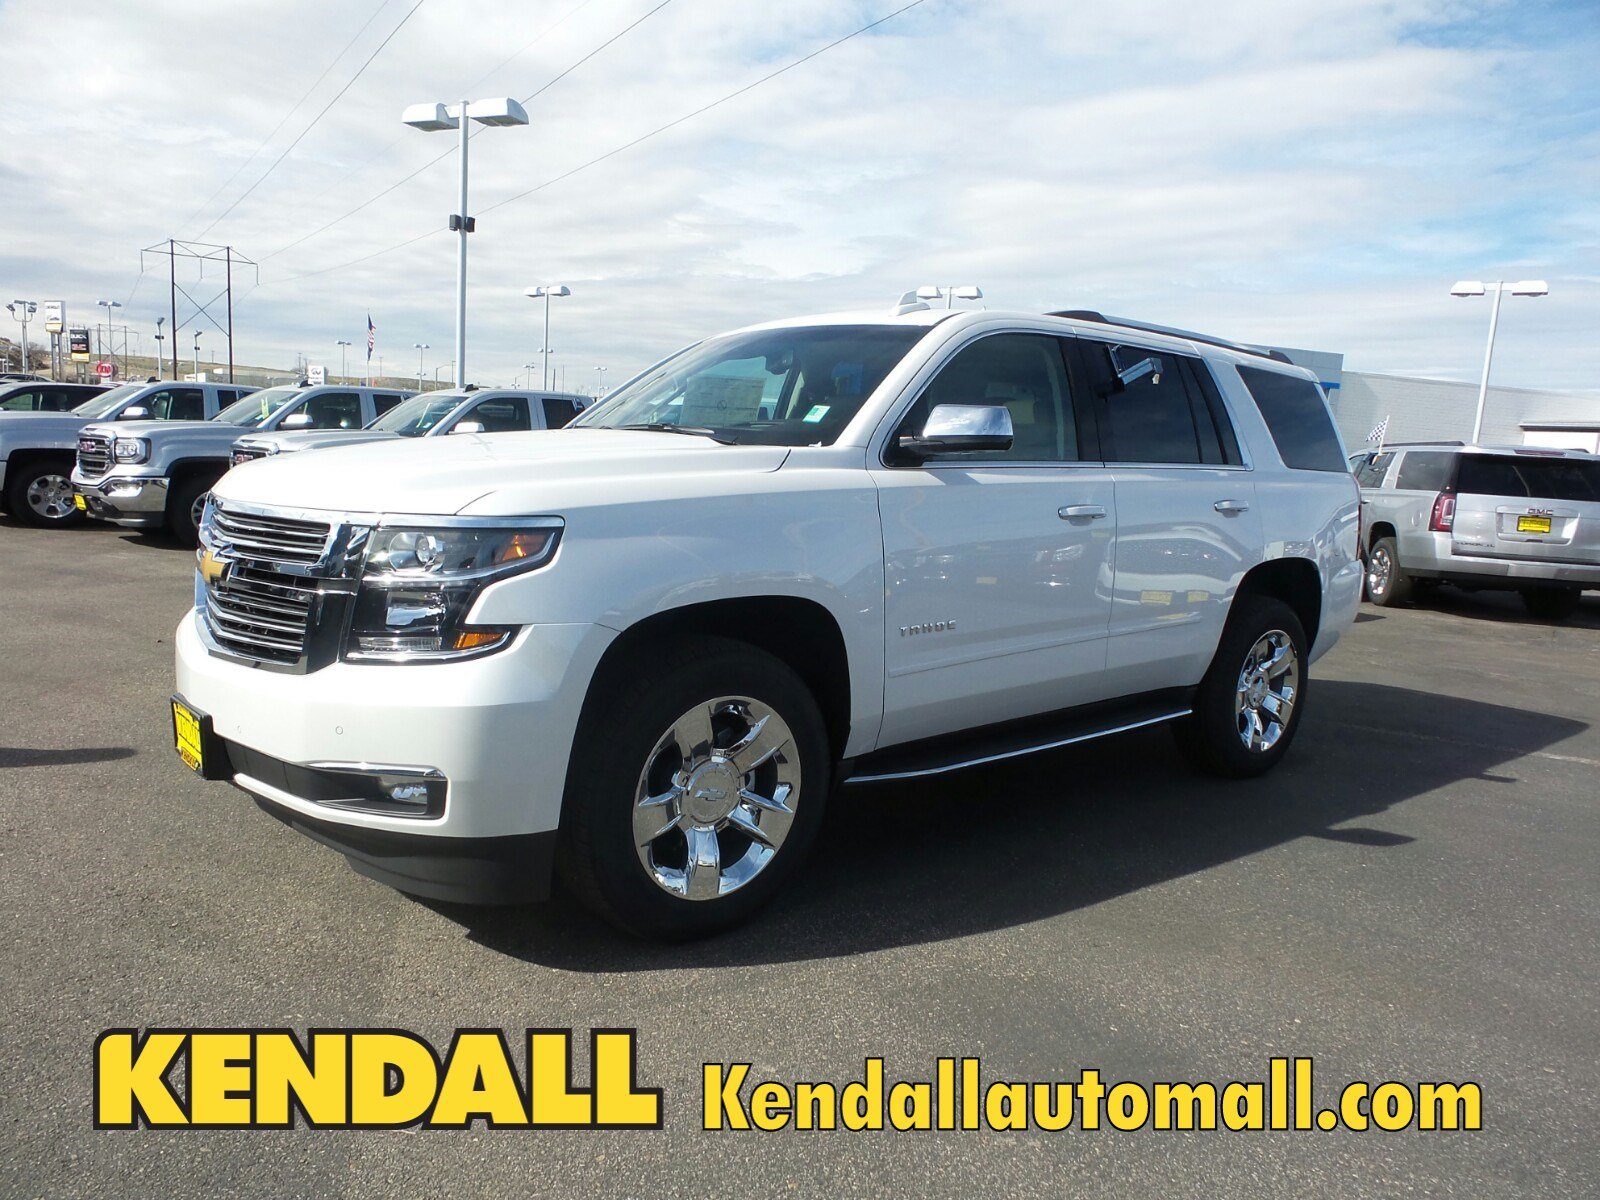 new 2017 chevrolet tahoe premier 4wd in nampa 170629 kendall at the idaho center auto mall. Black Bedroom Furniture Sets. Home Design Ideas